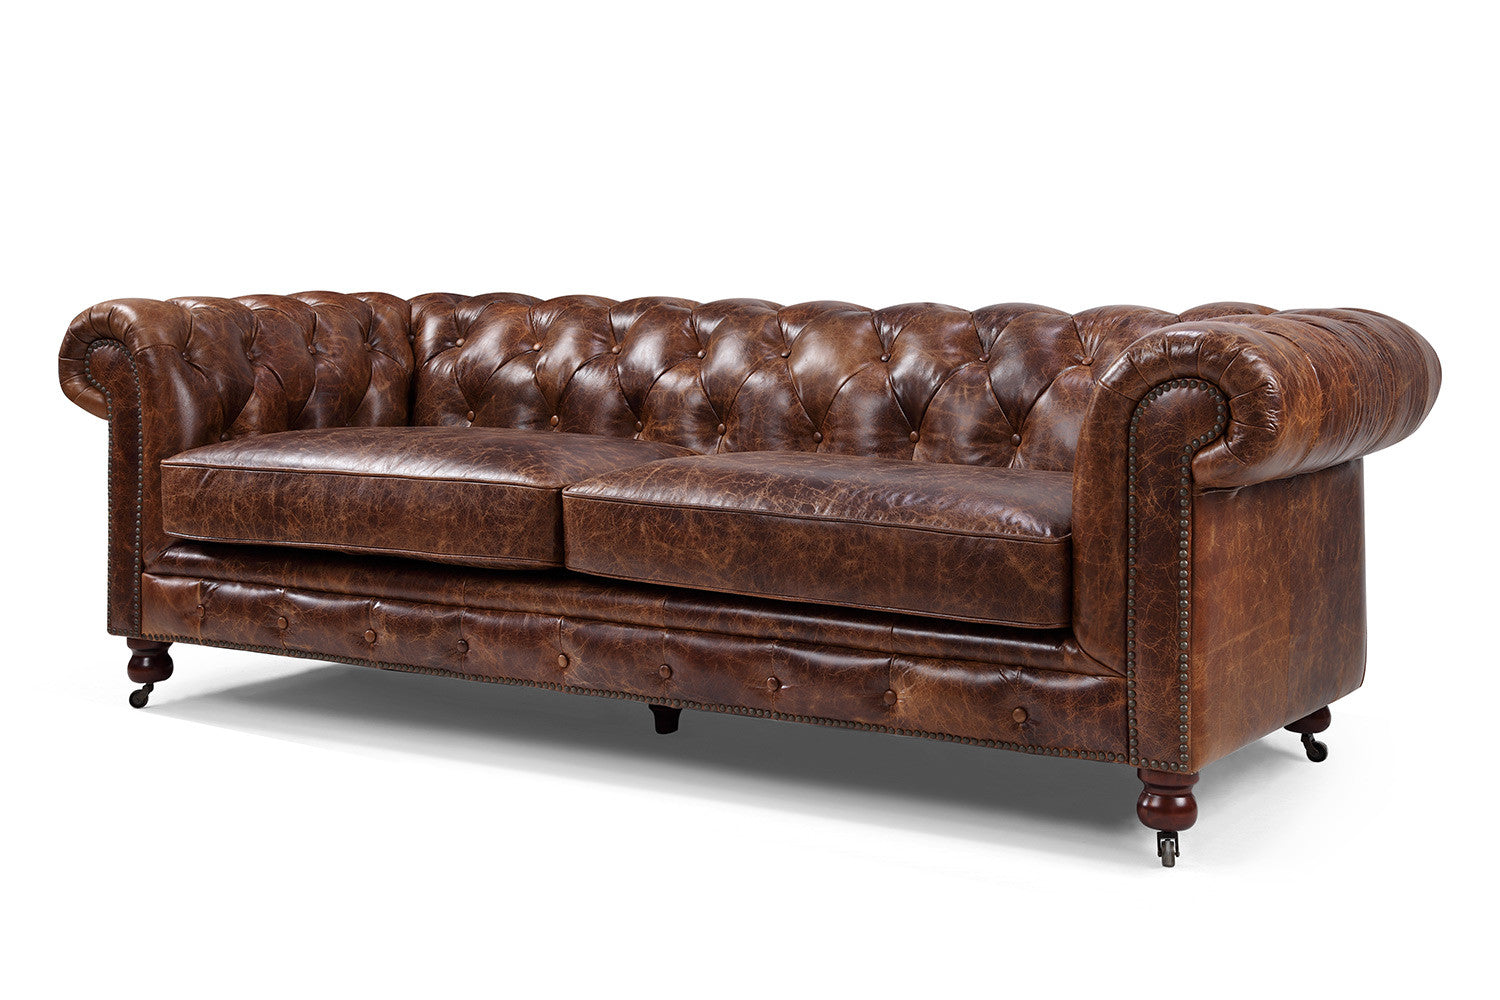 Canap chesterfield en cuir kensington rose moore for Canape 4 fois sans frais